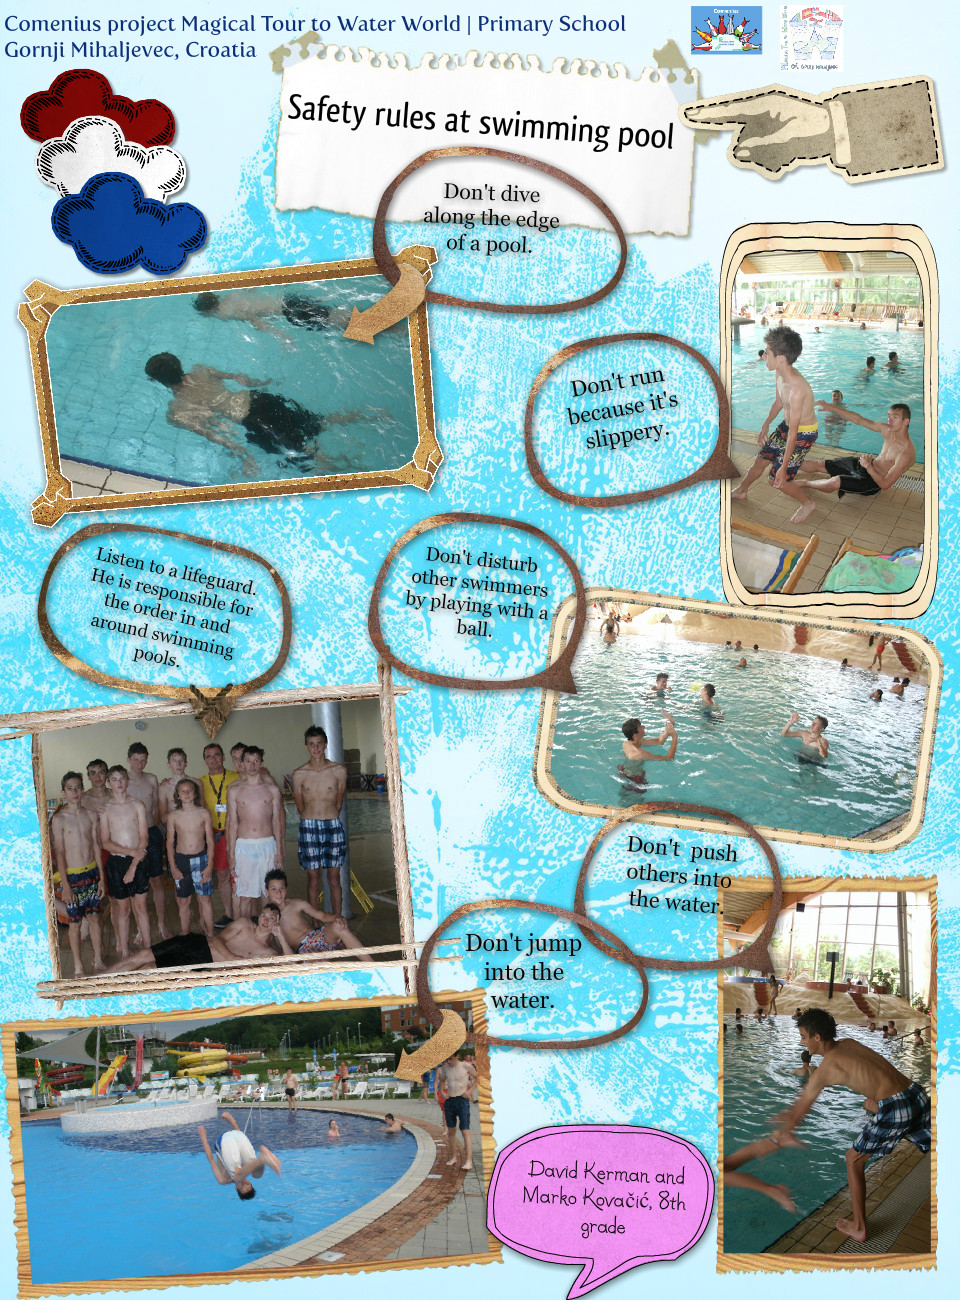 Safety rules at swimming pool